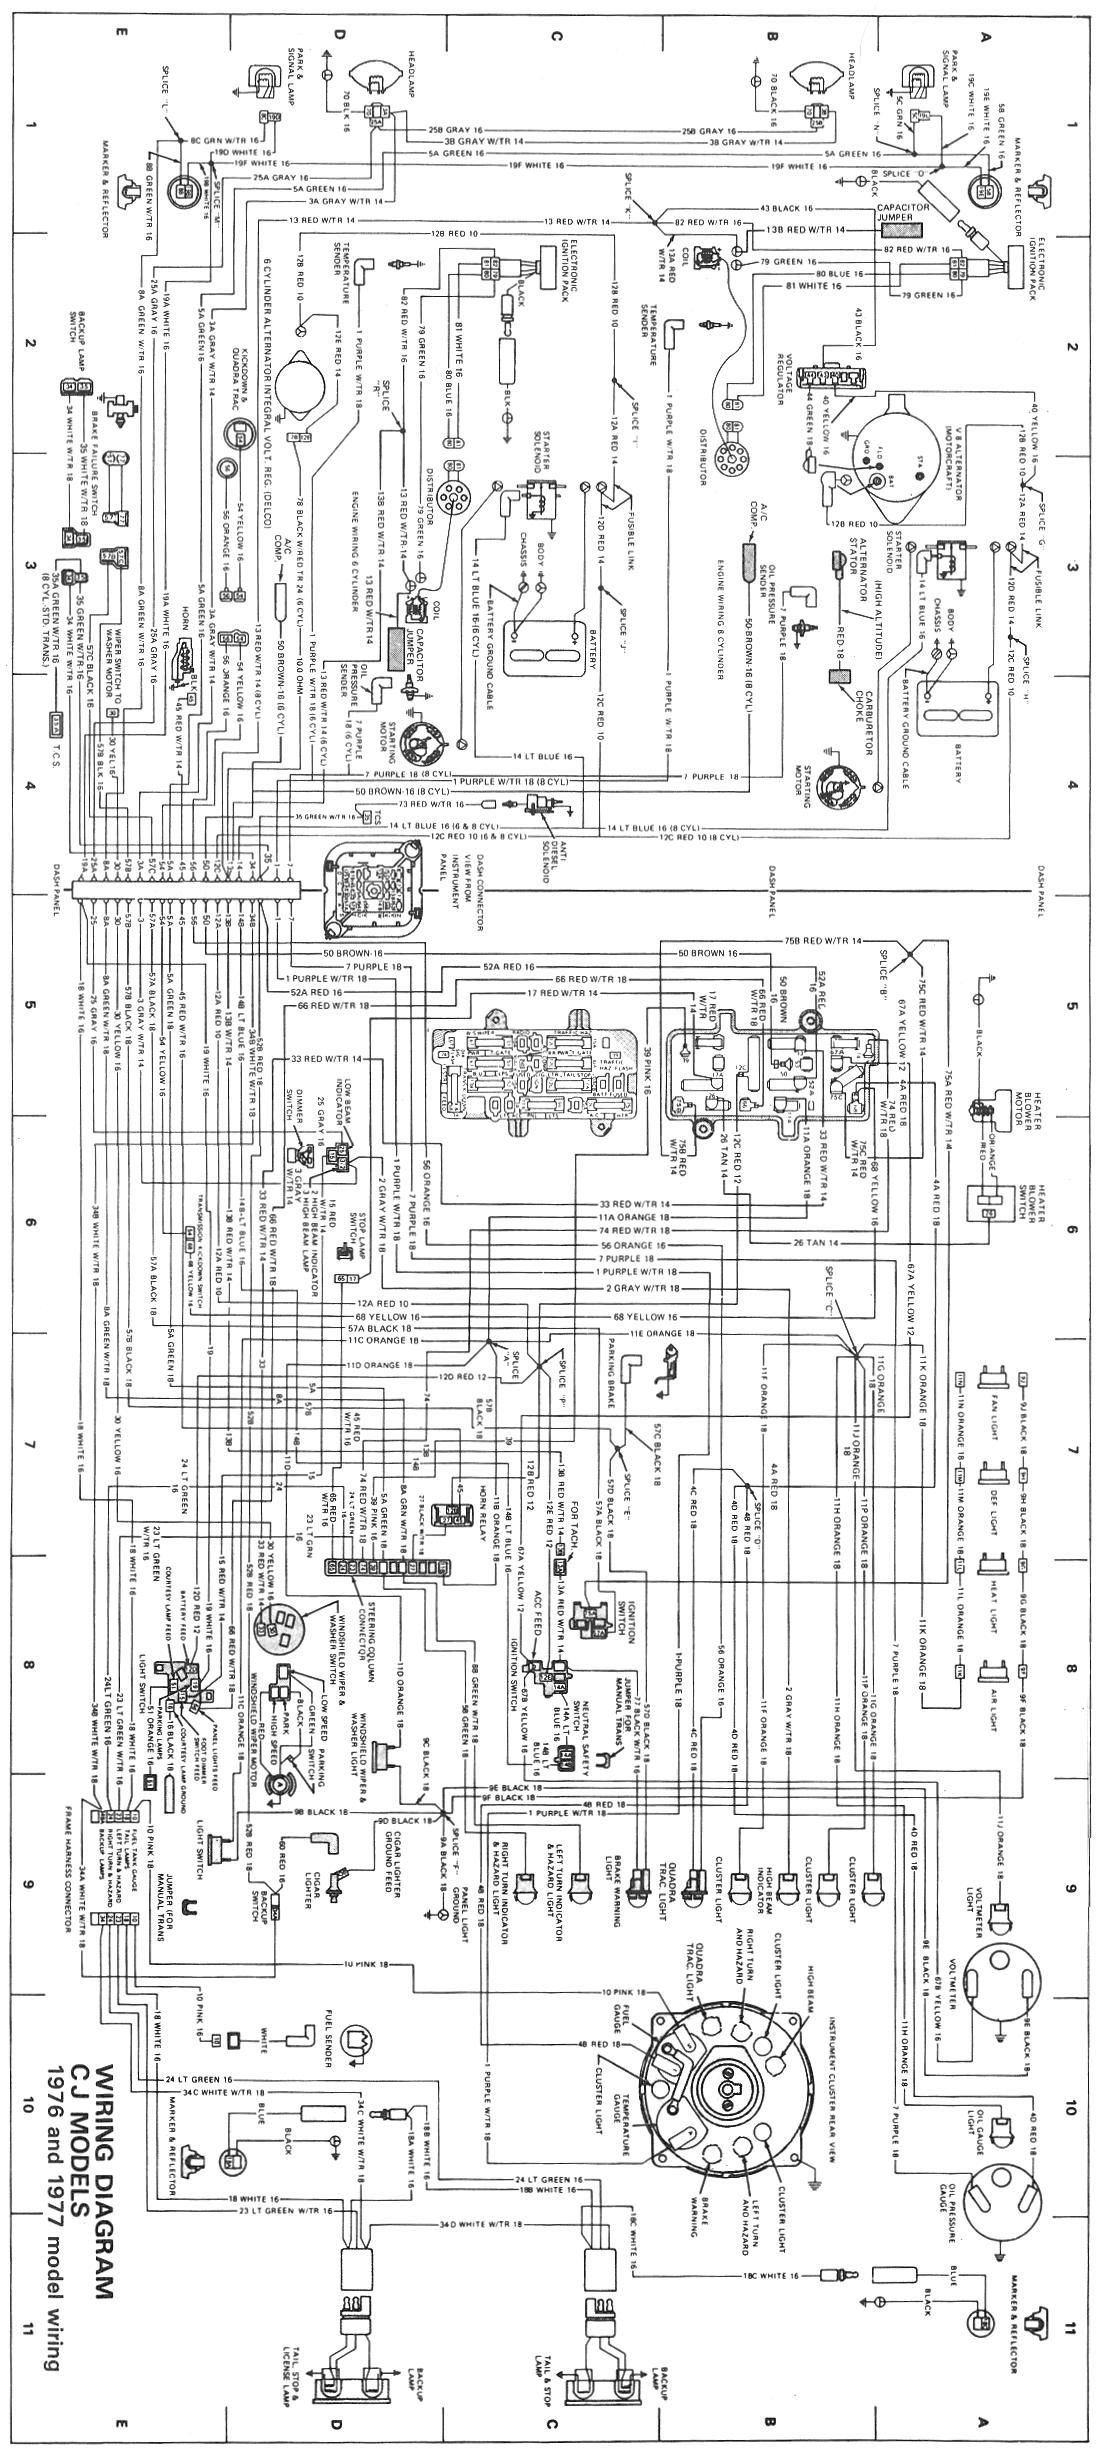 8d25ded6e3673519e155875e09844e5e cj wiring diagram 1976 1977 jpg 1,100�2,459 pixels 1976 jeep cj5 wiring harness for 1977 jeep cj-5 at creativeand.co